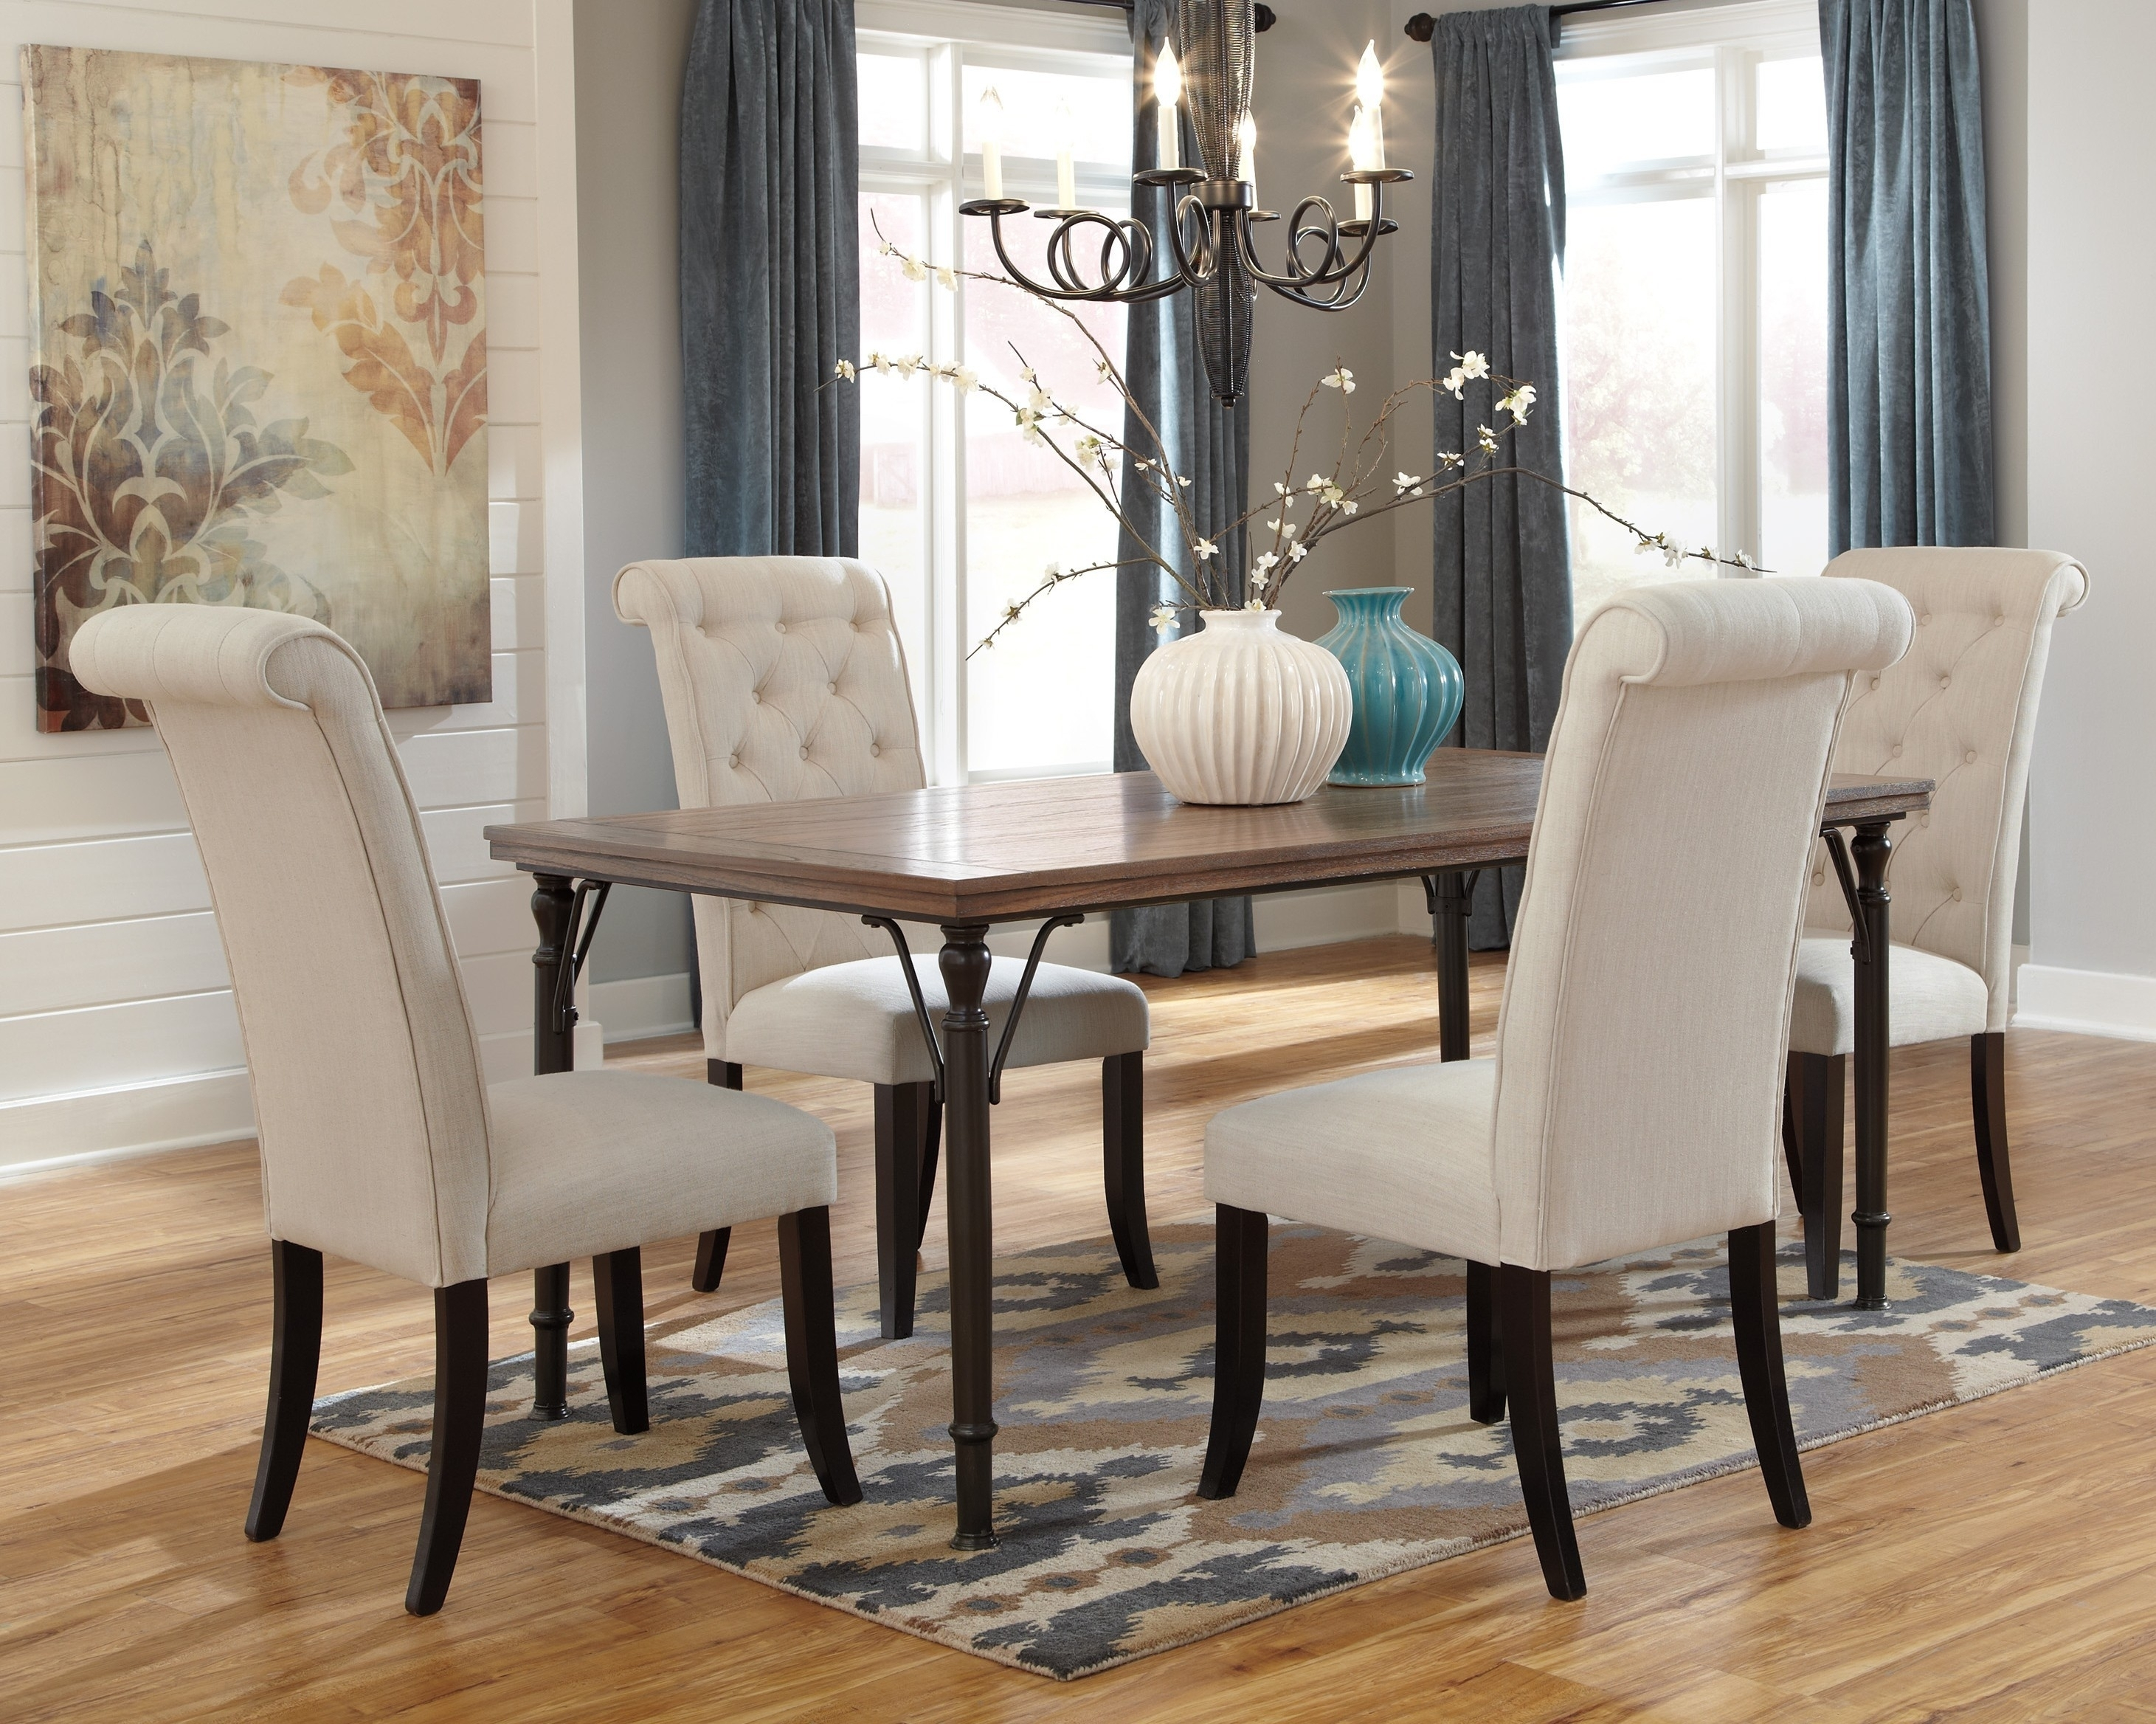 Buy Ashley Furniture Tripton Rectangular Dining Room Table Set with Sofa Chairs With Dining Table (Image 3 of 10)